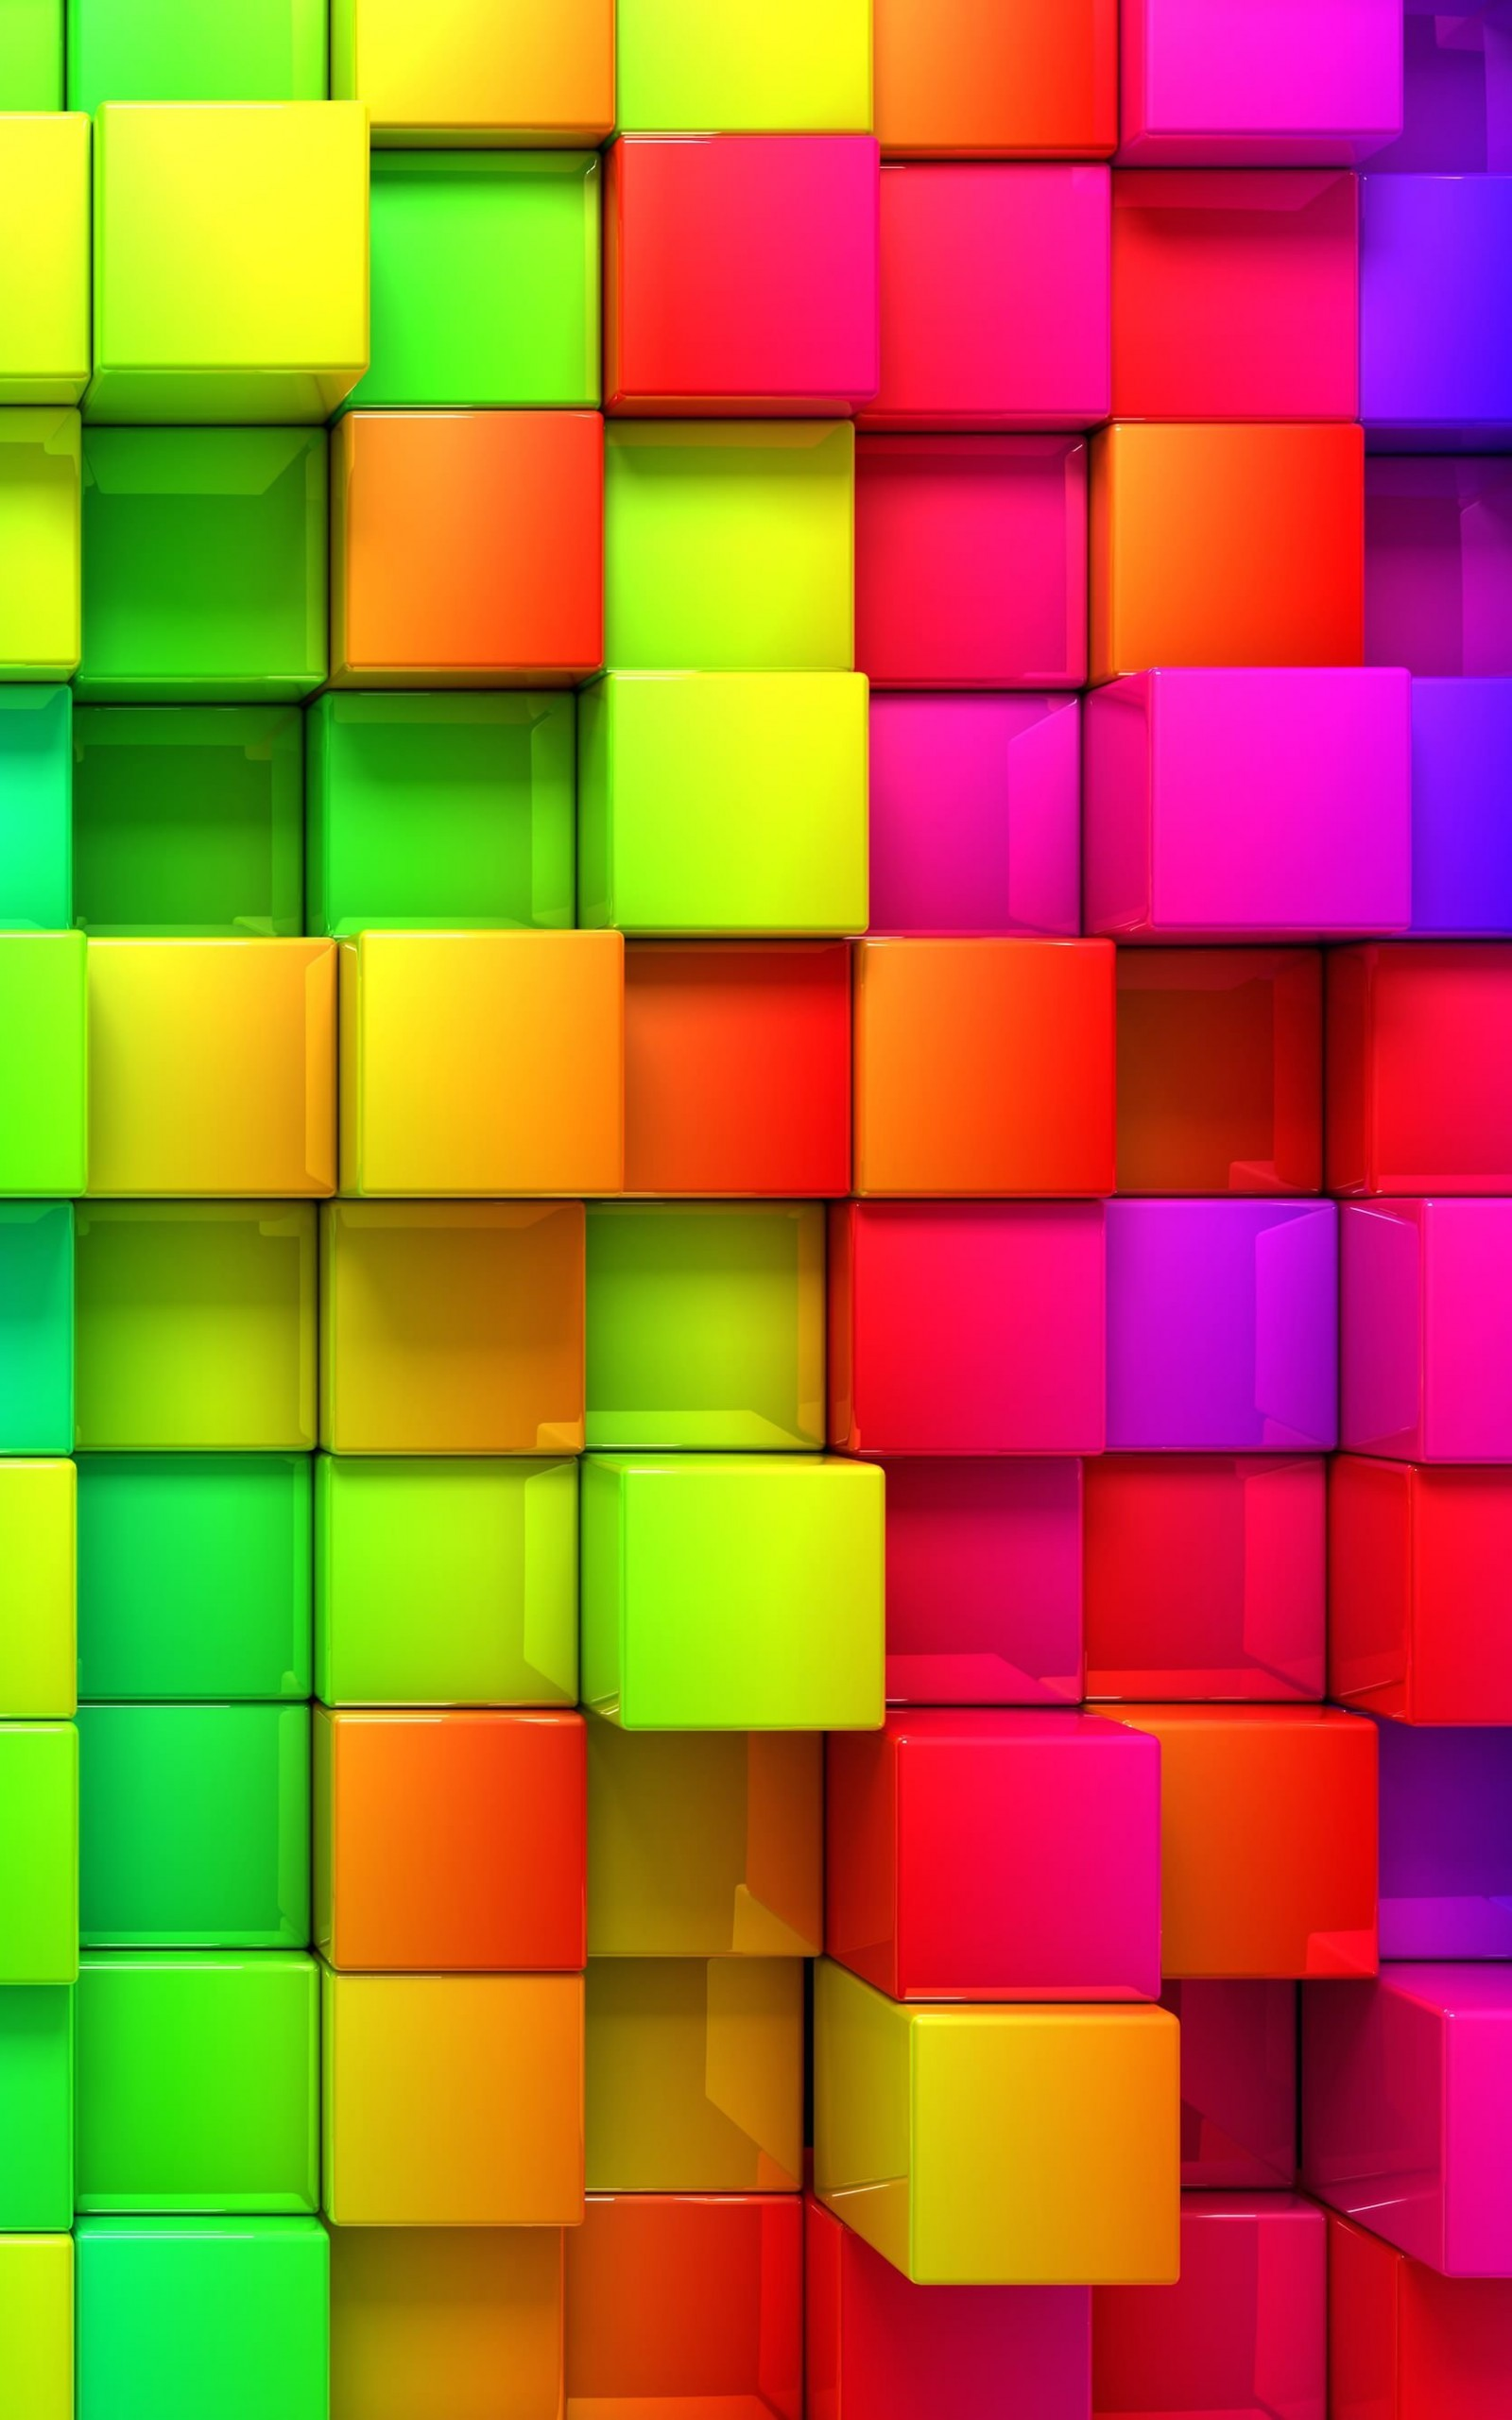 Cubic Rainbow Wallpaper for Amazon Kindle Fire HDX 8.9